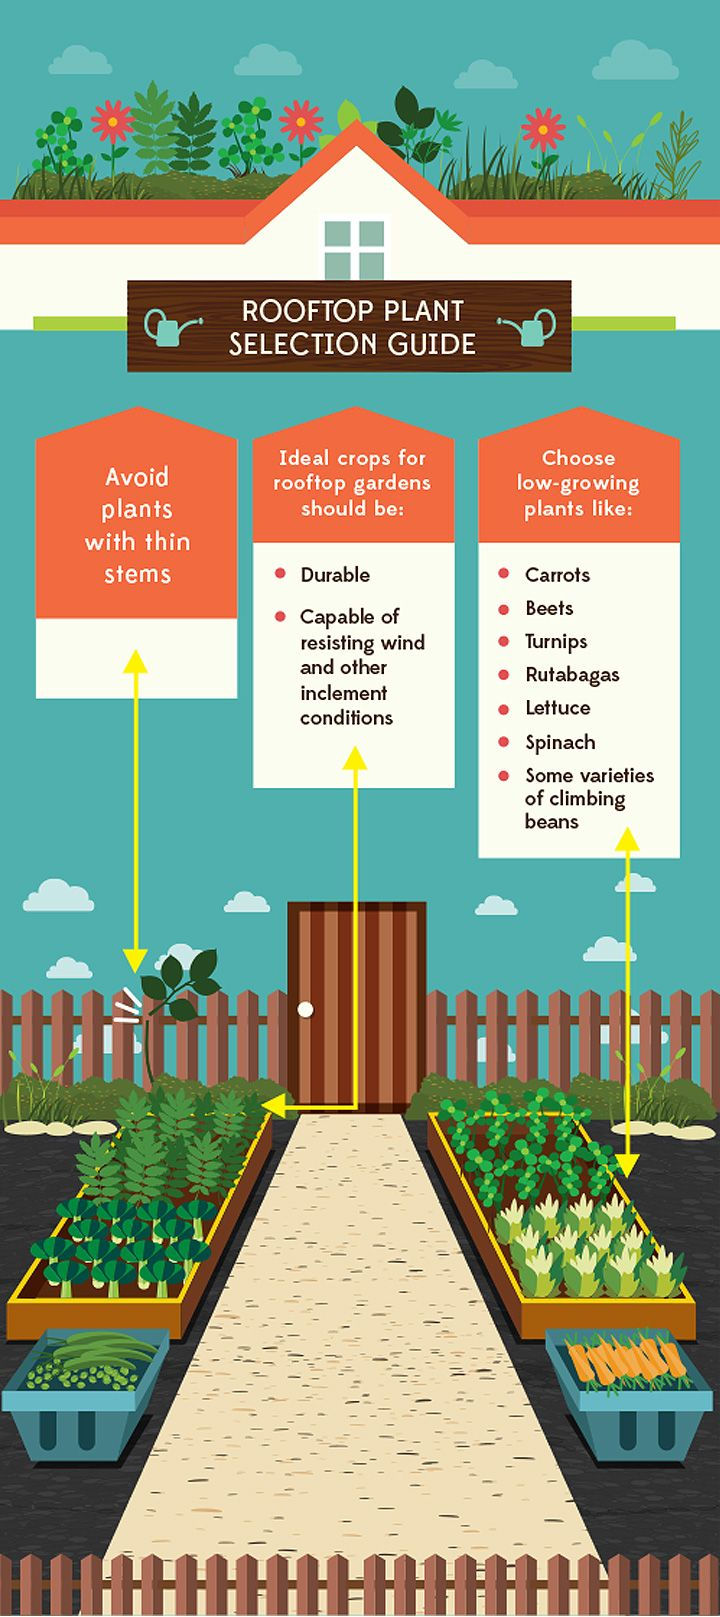 Diy How To Build A Rooftop Garden Infographic Rooftop Garden Gardening Infographic Rooftop